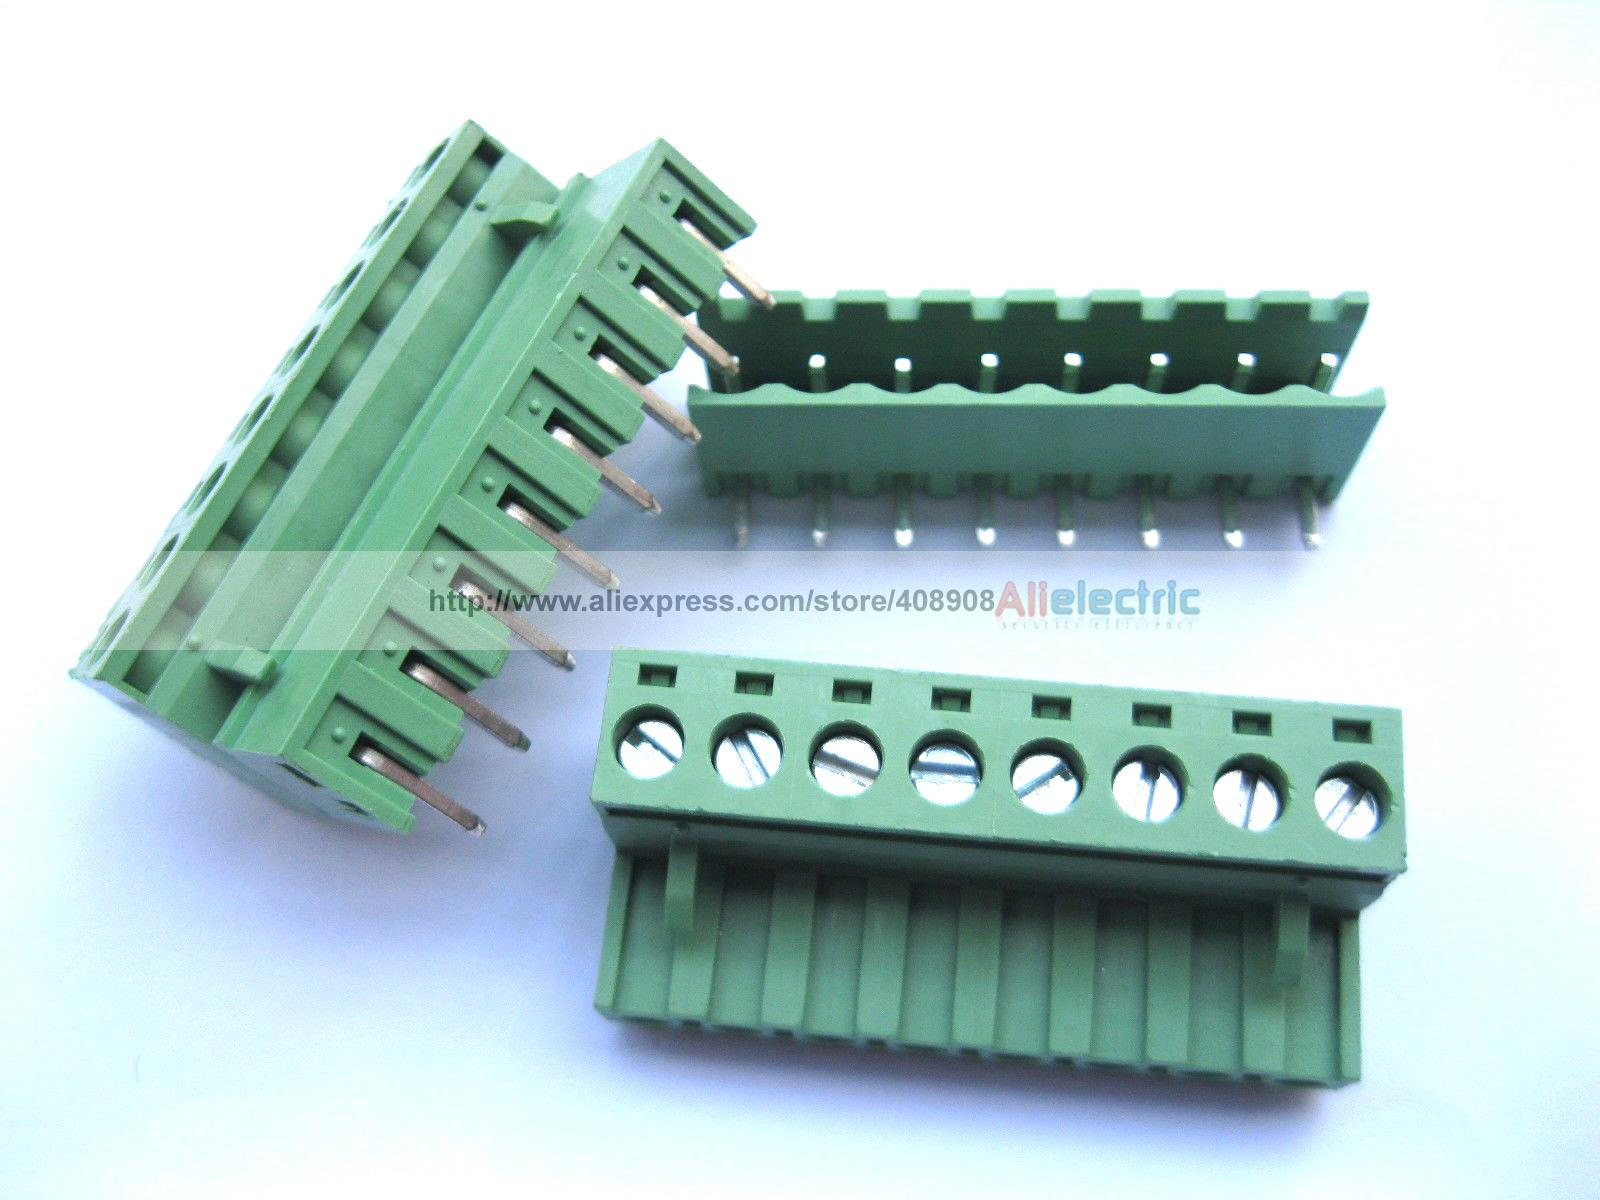 50 Pcs 5.08mm Angle 8 Pin Screw Terminal Block Connector Pluggable Type Green 30 pcs screw terminal block connector 3 81mm 12 pin green pluggable type